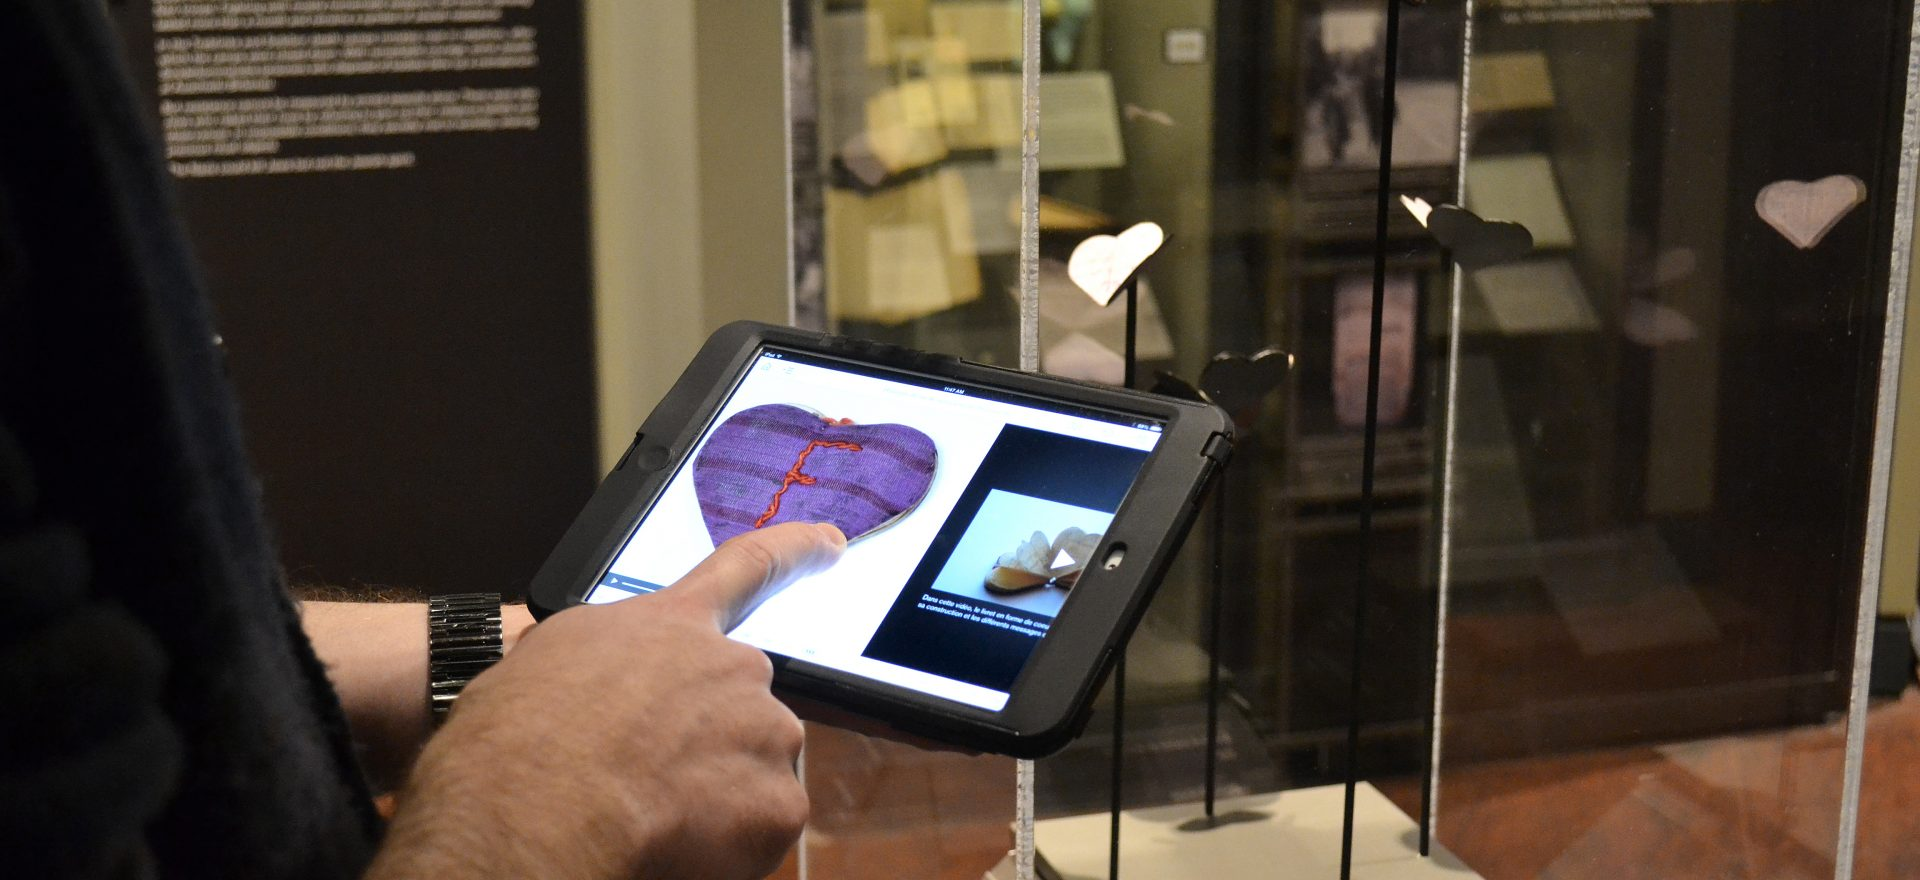 "The Montreal Holocaust Museum app presents three different tours of its permanent exhibition: ""Life Stories of Holocaust Survivors"", ""Children and Teenagers during the Holocaust"" and ""Deconstructing Genocide""."